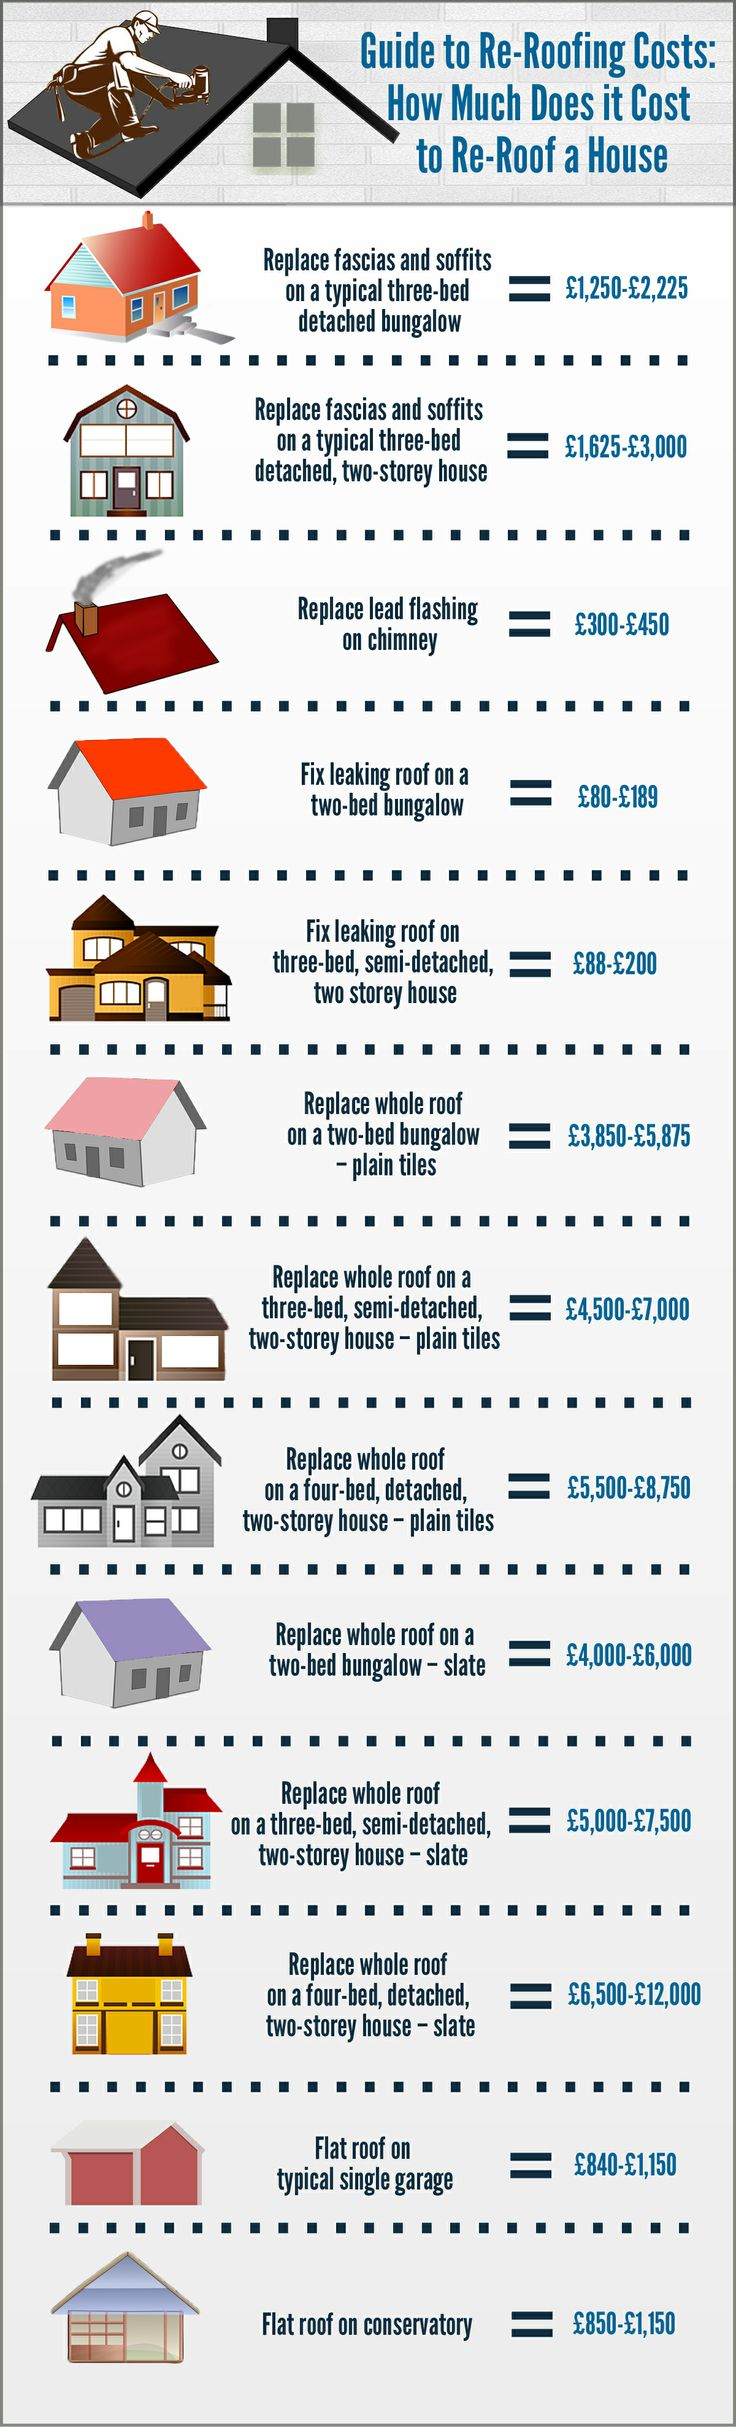 Roof Repair And Replacement Is A Very Common In The UK. However, As Roofs  Come In Many Different Sizes, Shapes And Materials, Cost Can Vary  Significantly.